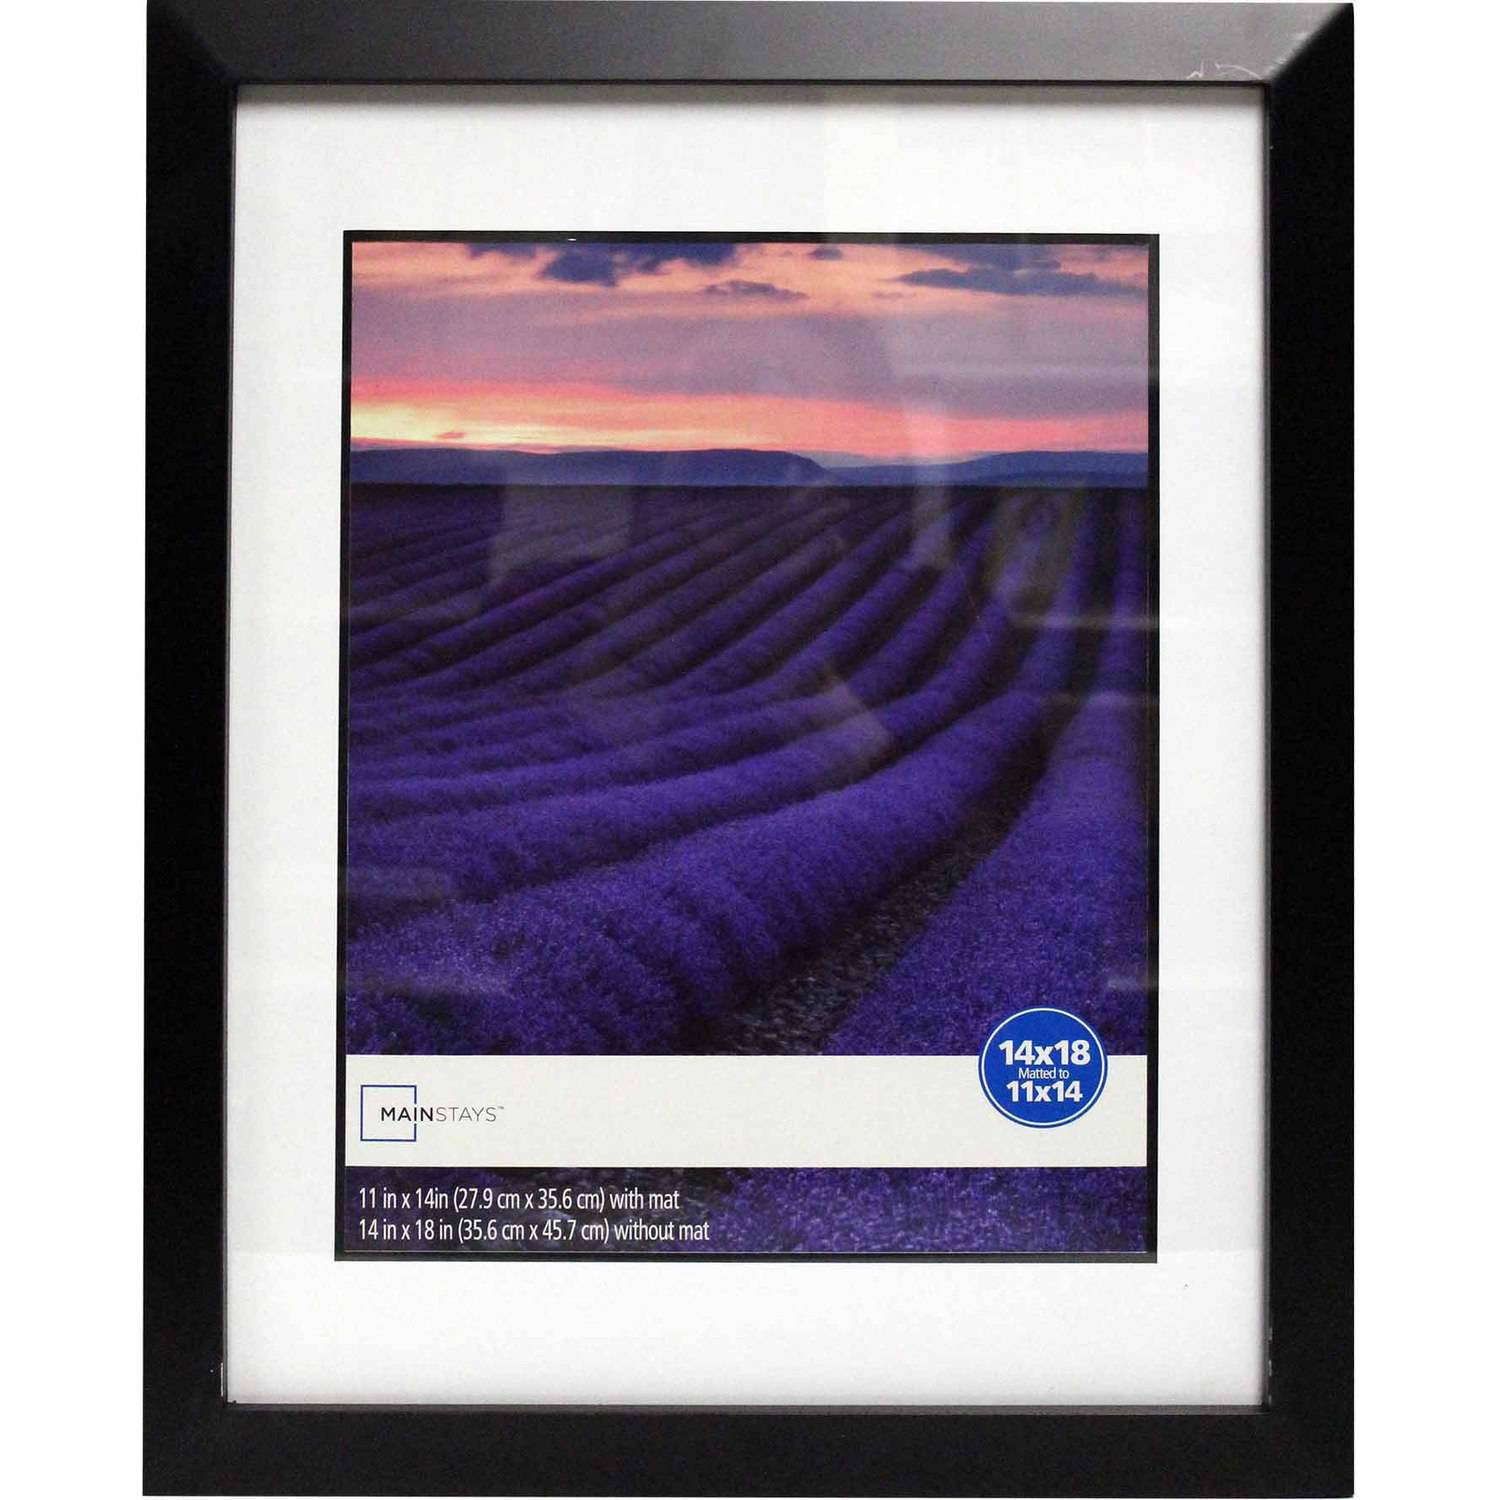 Mainstays Wide Picture Frame 14x18 Matted To 11x14 Walmartcom